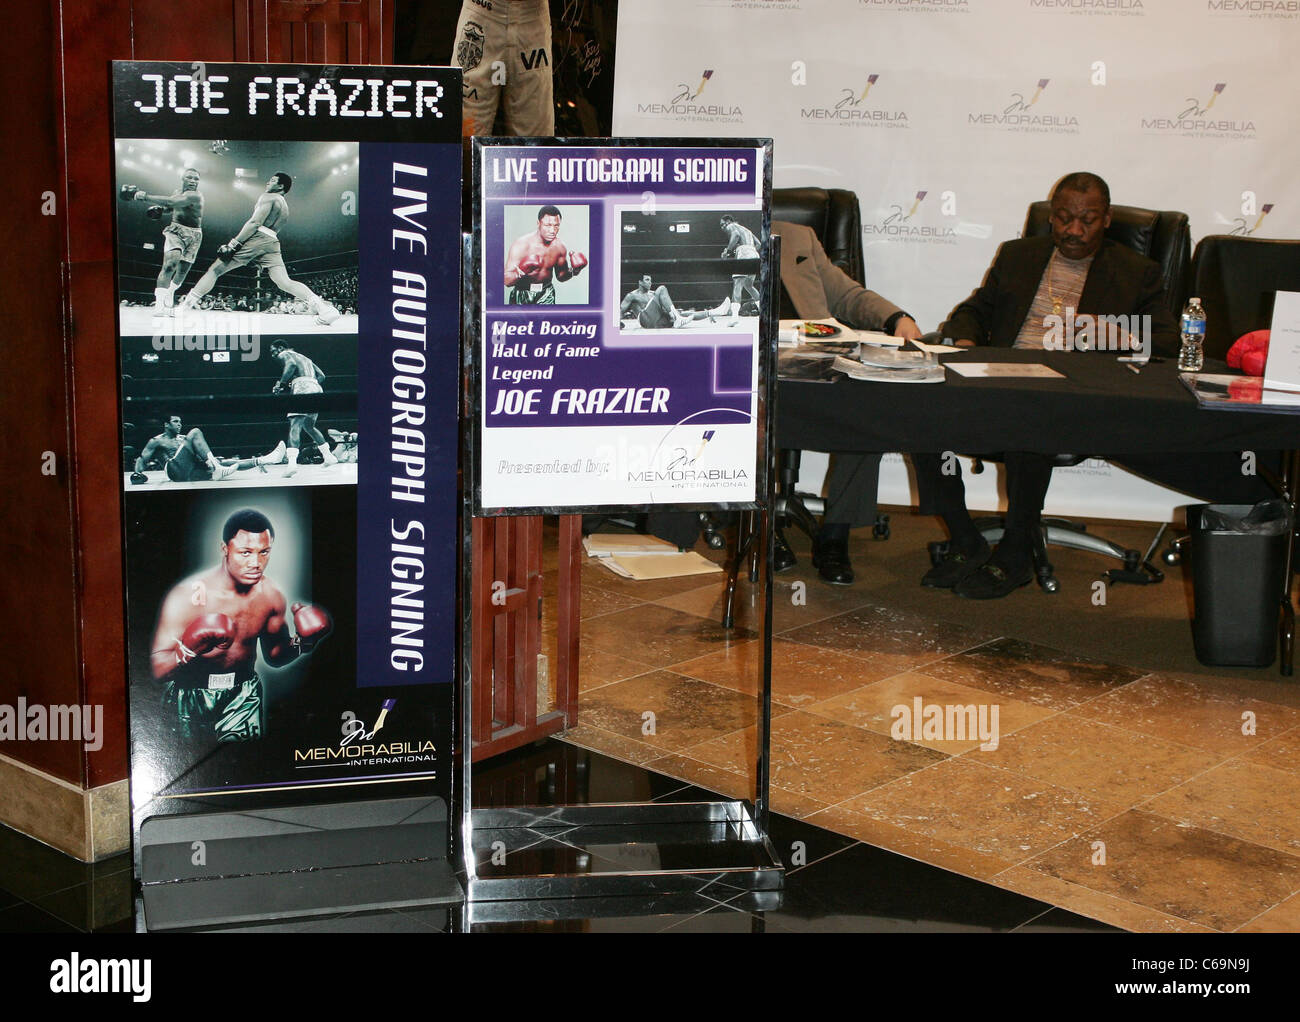 Atmosphere at in-store appearance for Joe Frazier Meet and Greet at Memorabilia International, Miracle Mile Shops, - Stock Image